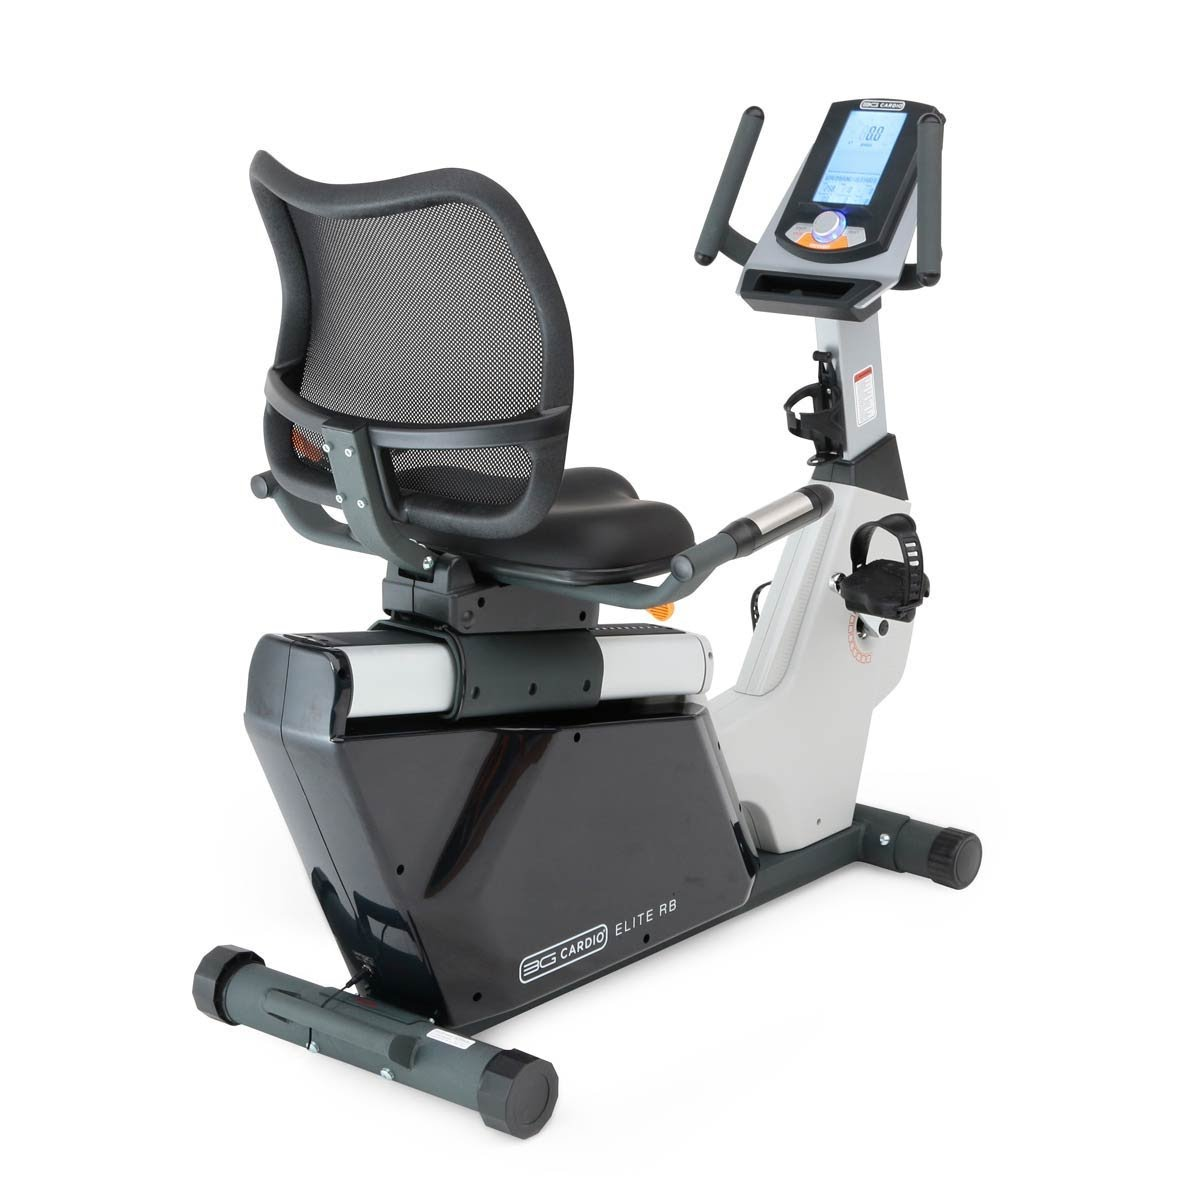 Exercise Bike Zone: 3G Cardio Elite RB Recumbent Exercise